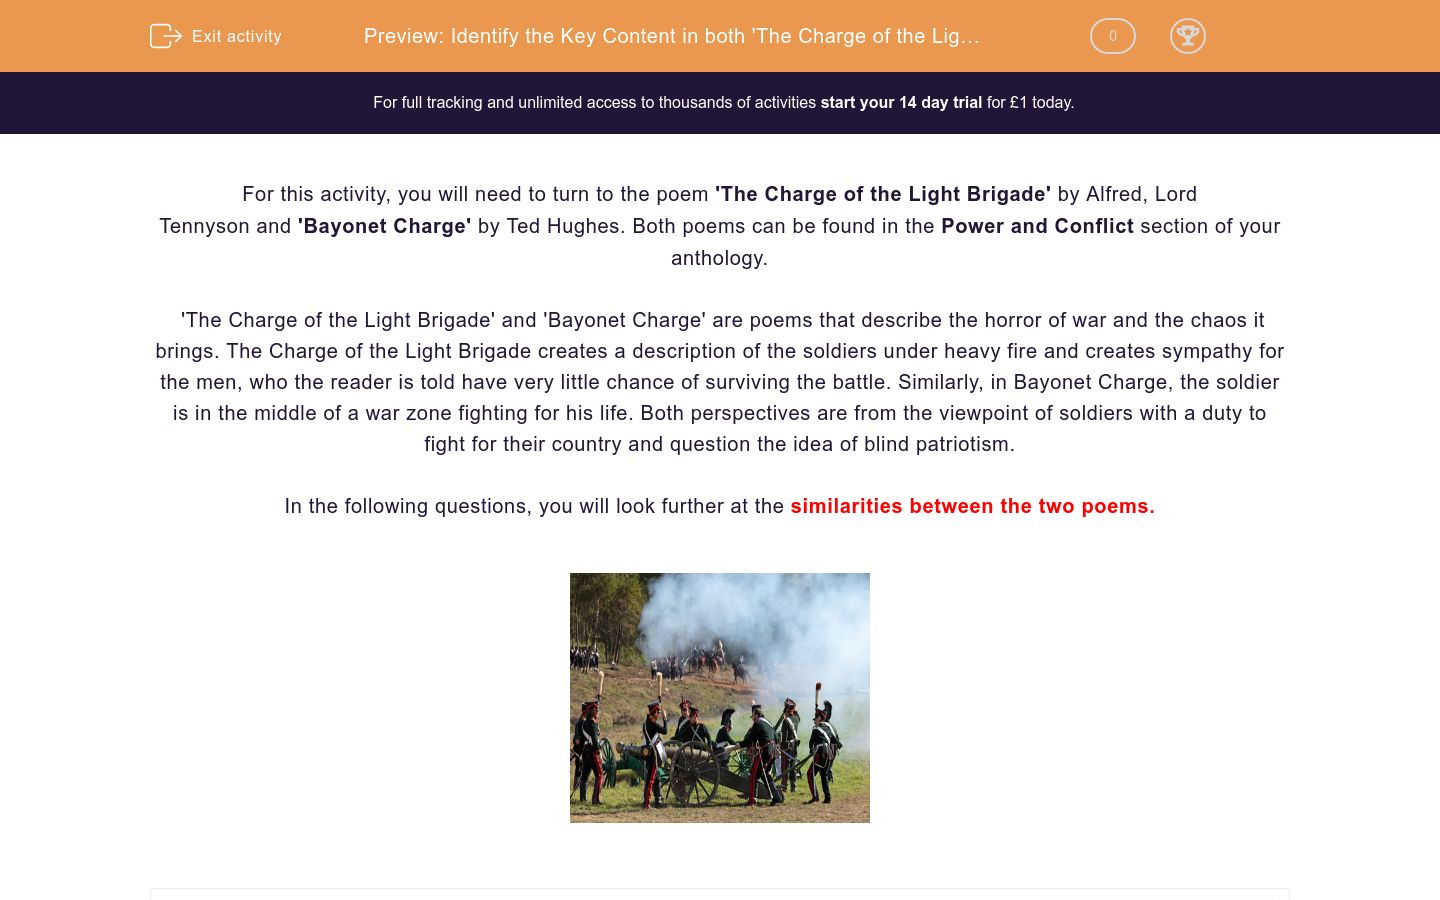 'Identify the Key Content in both 'The Charge of the Light Brigade' and 'Bayonet Charge' and Explain How They Compare' worksheet